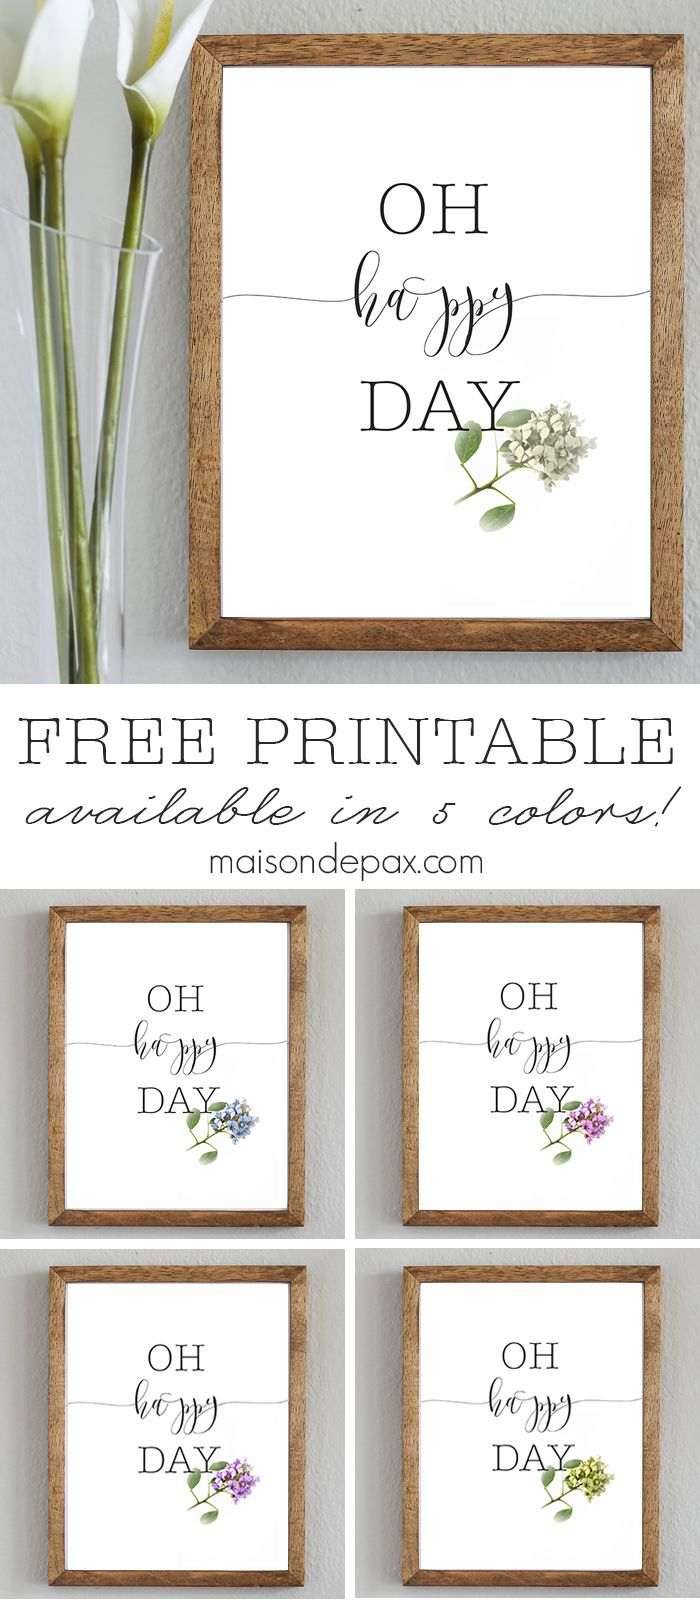 Beautiful Printables | Printable decor | beautiful printable decor ideas | beautiful fonts | Oh Happy Day | Free spring printable available